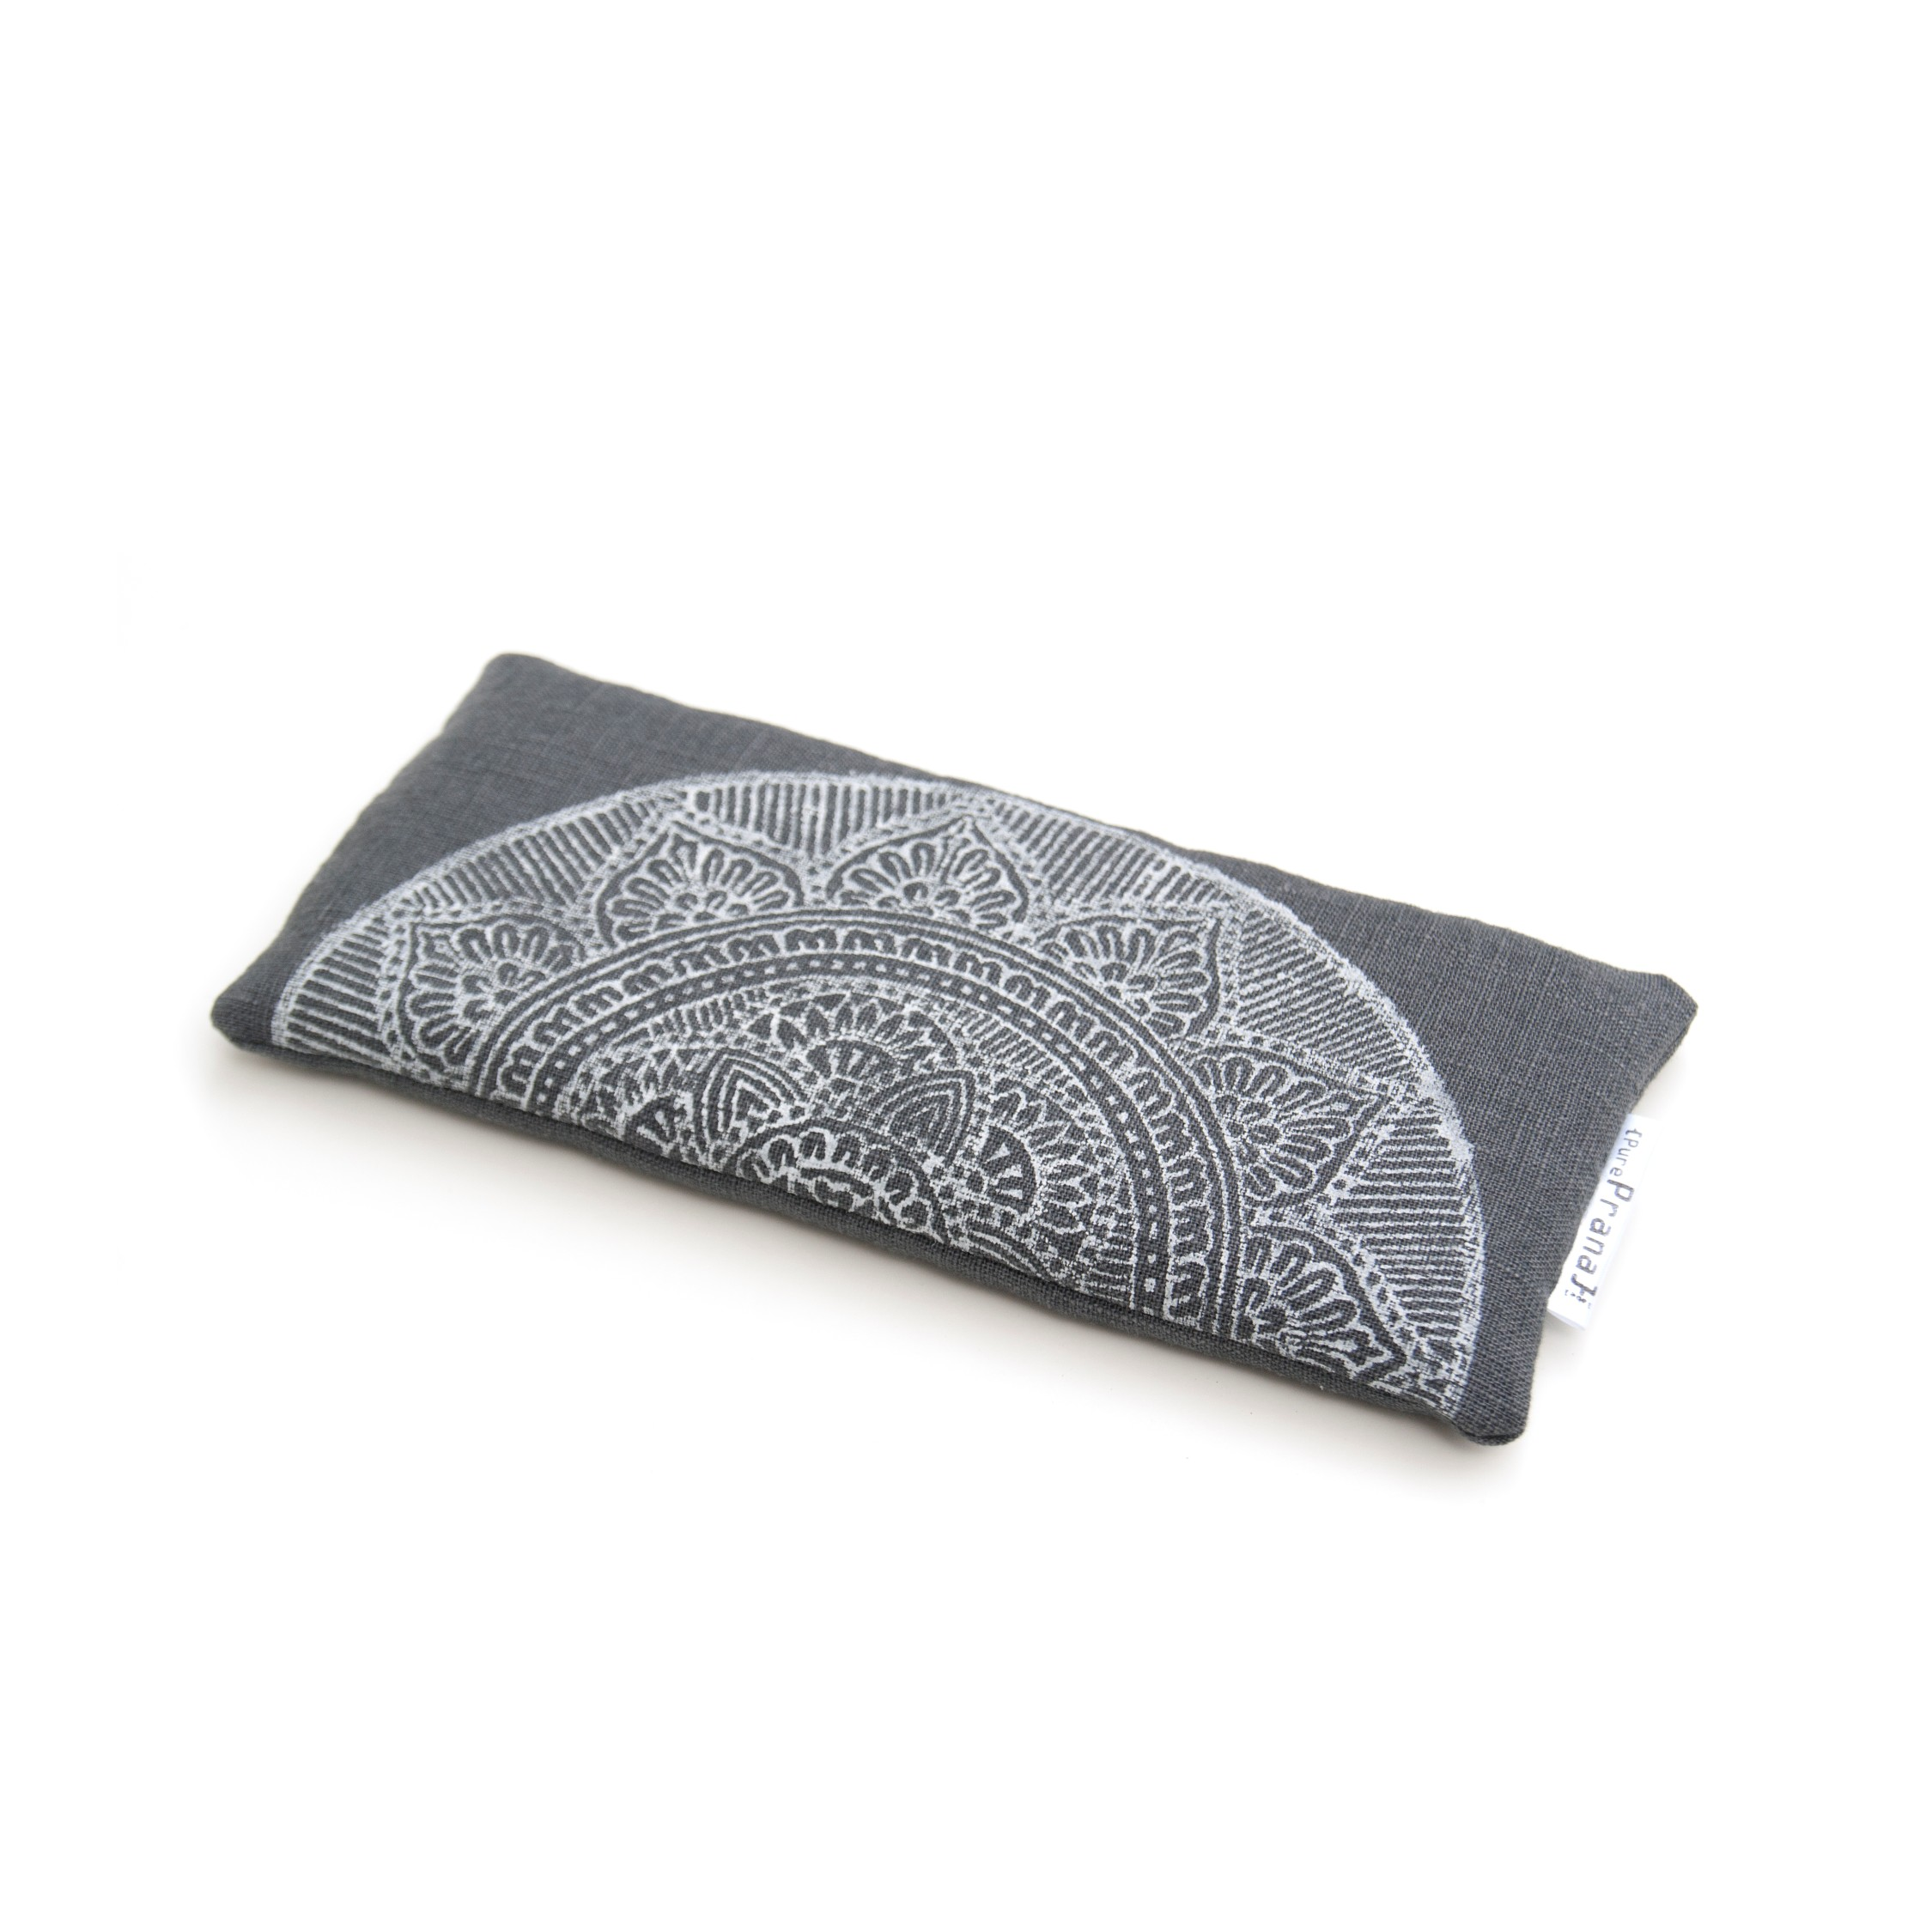 Lavender eye pillow Mandala in dark gray by Pure Prana Label